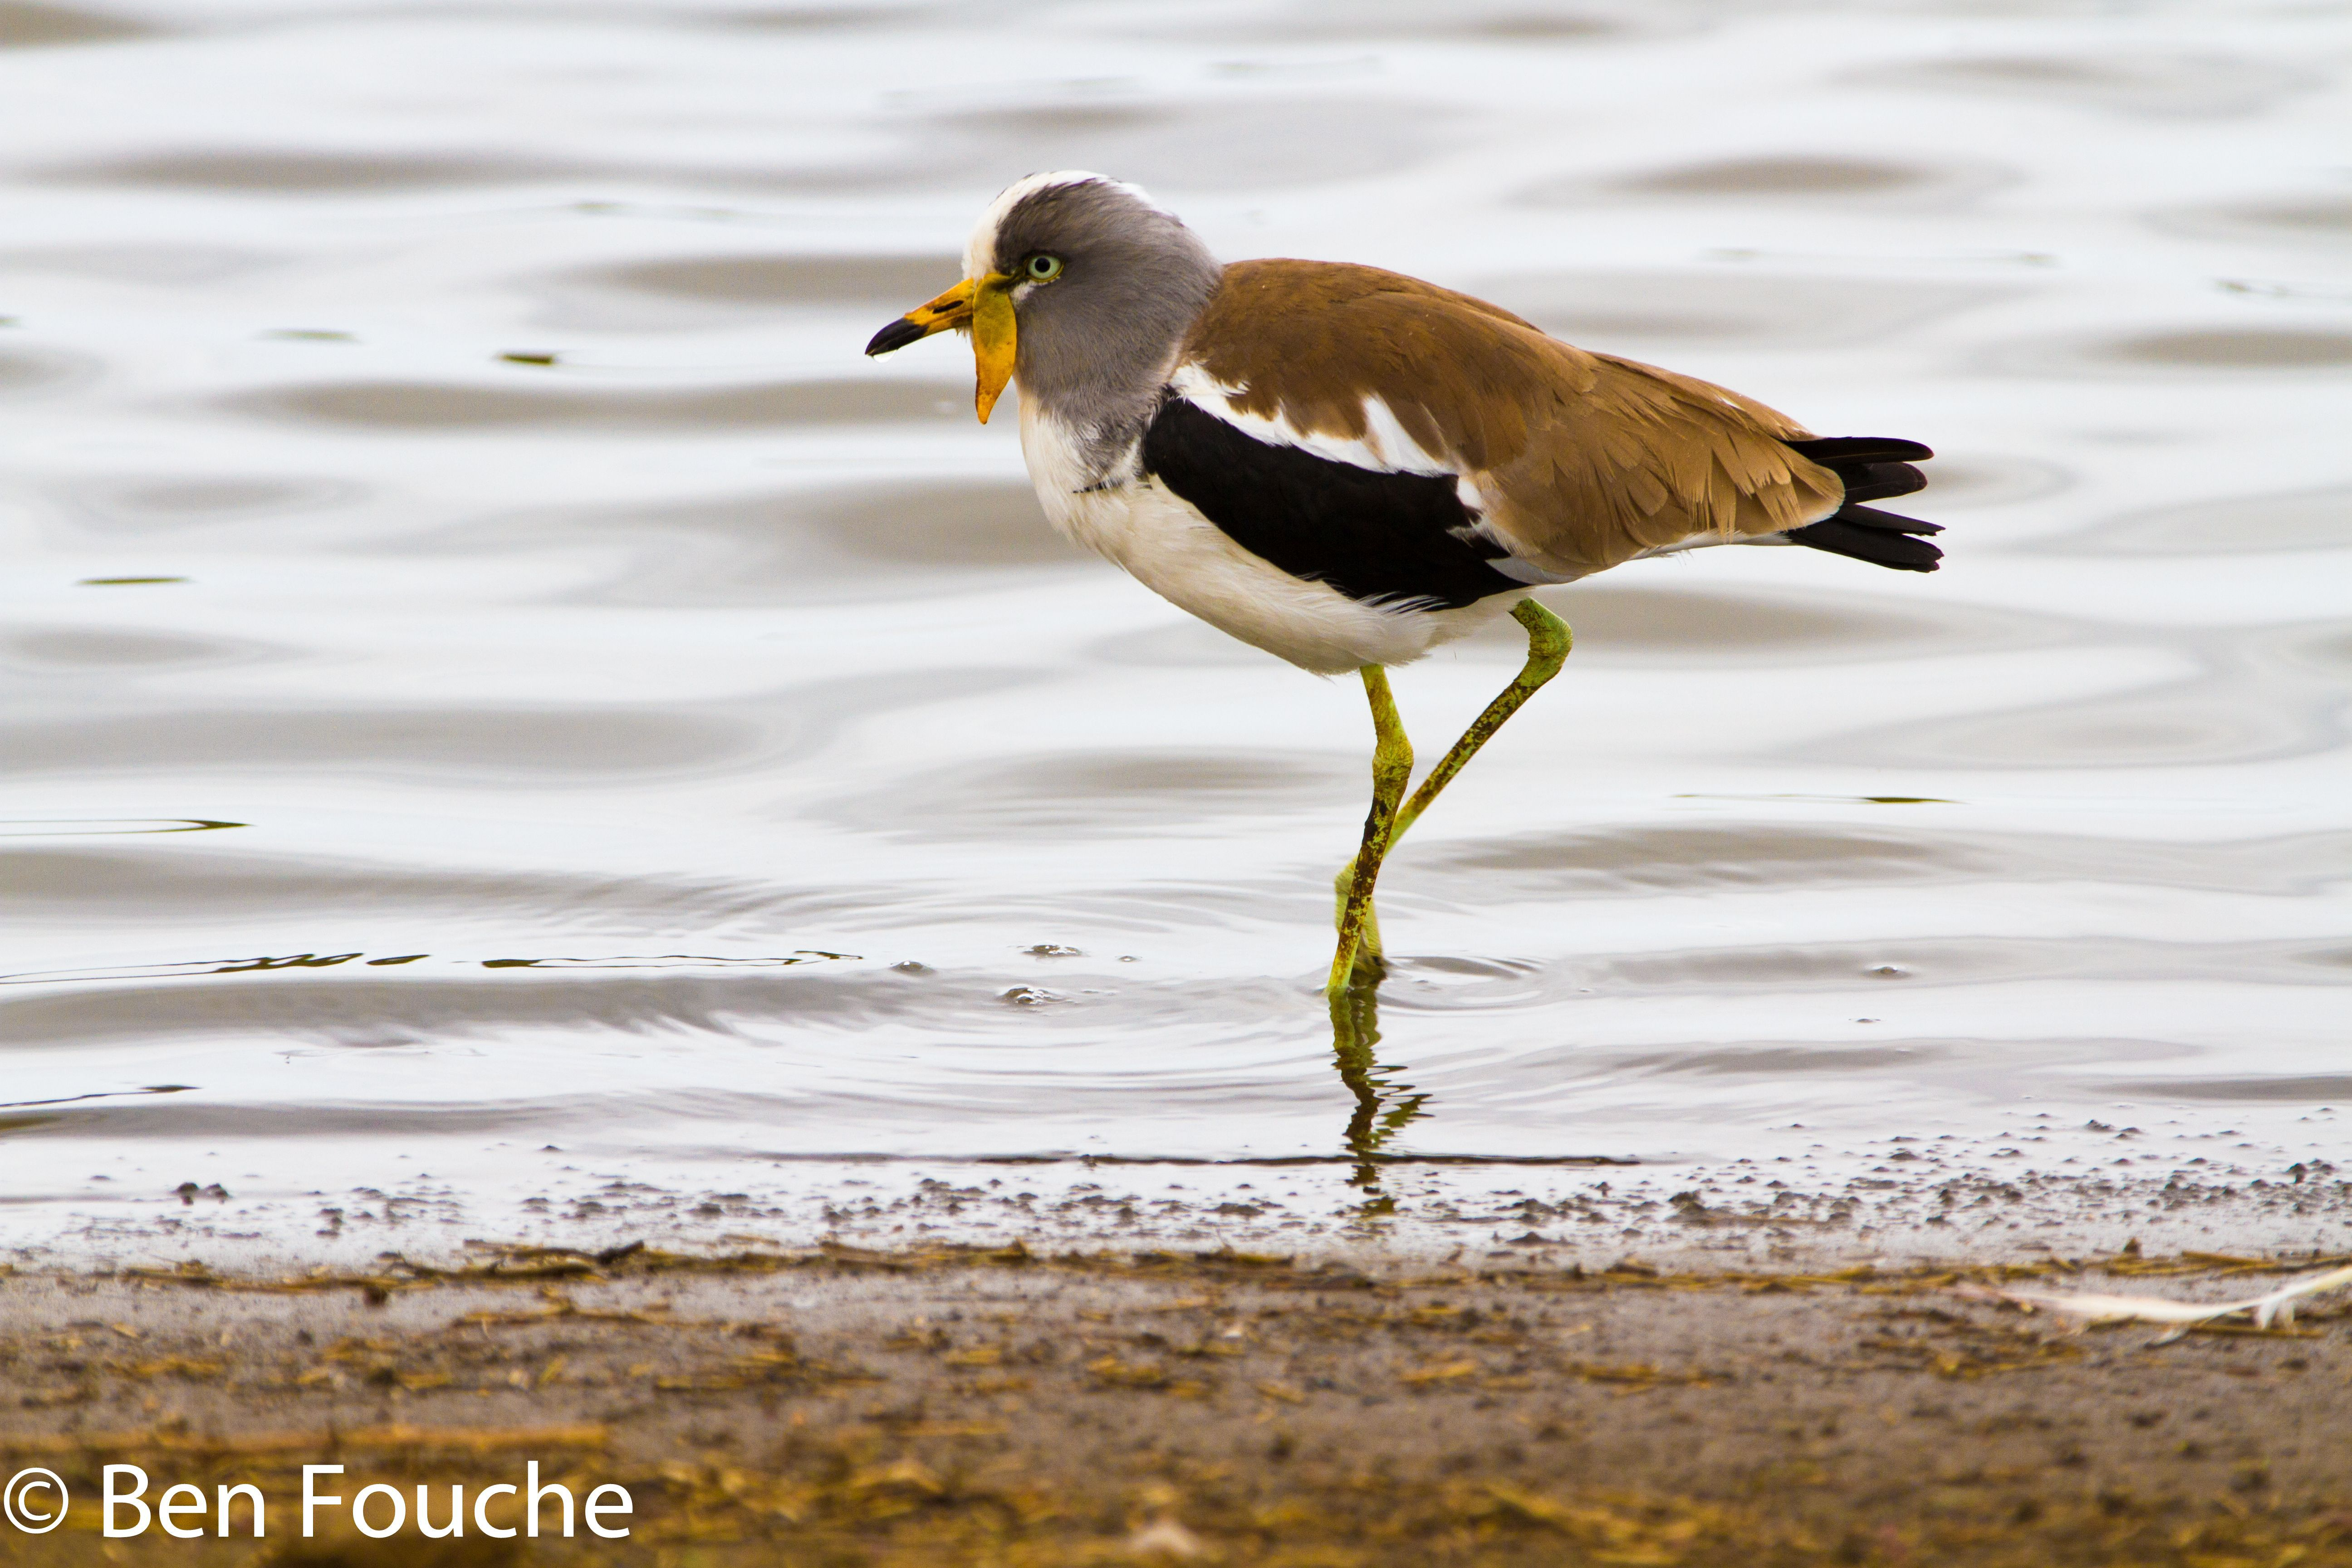 White-crowned Lapwing, Witkopkiewiet, (Vanellus albiceps)